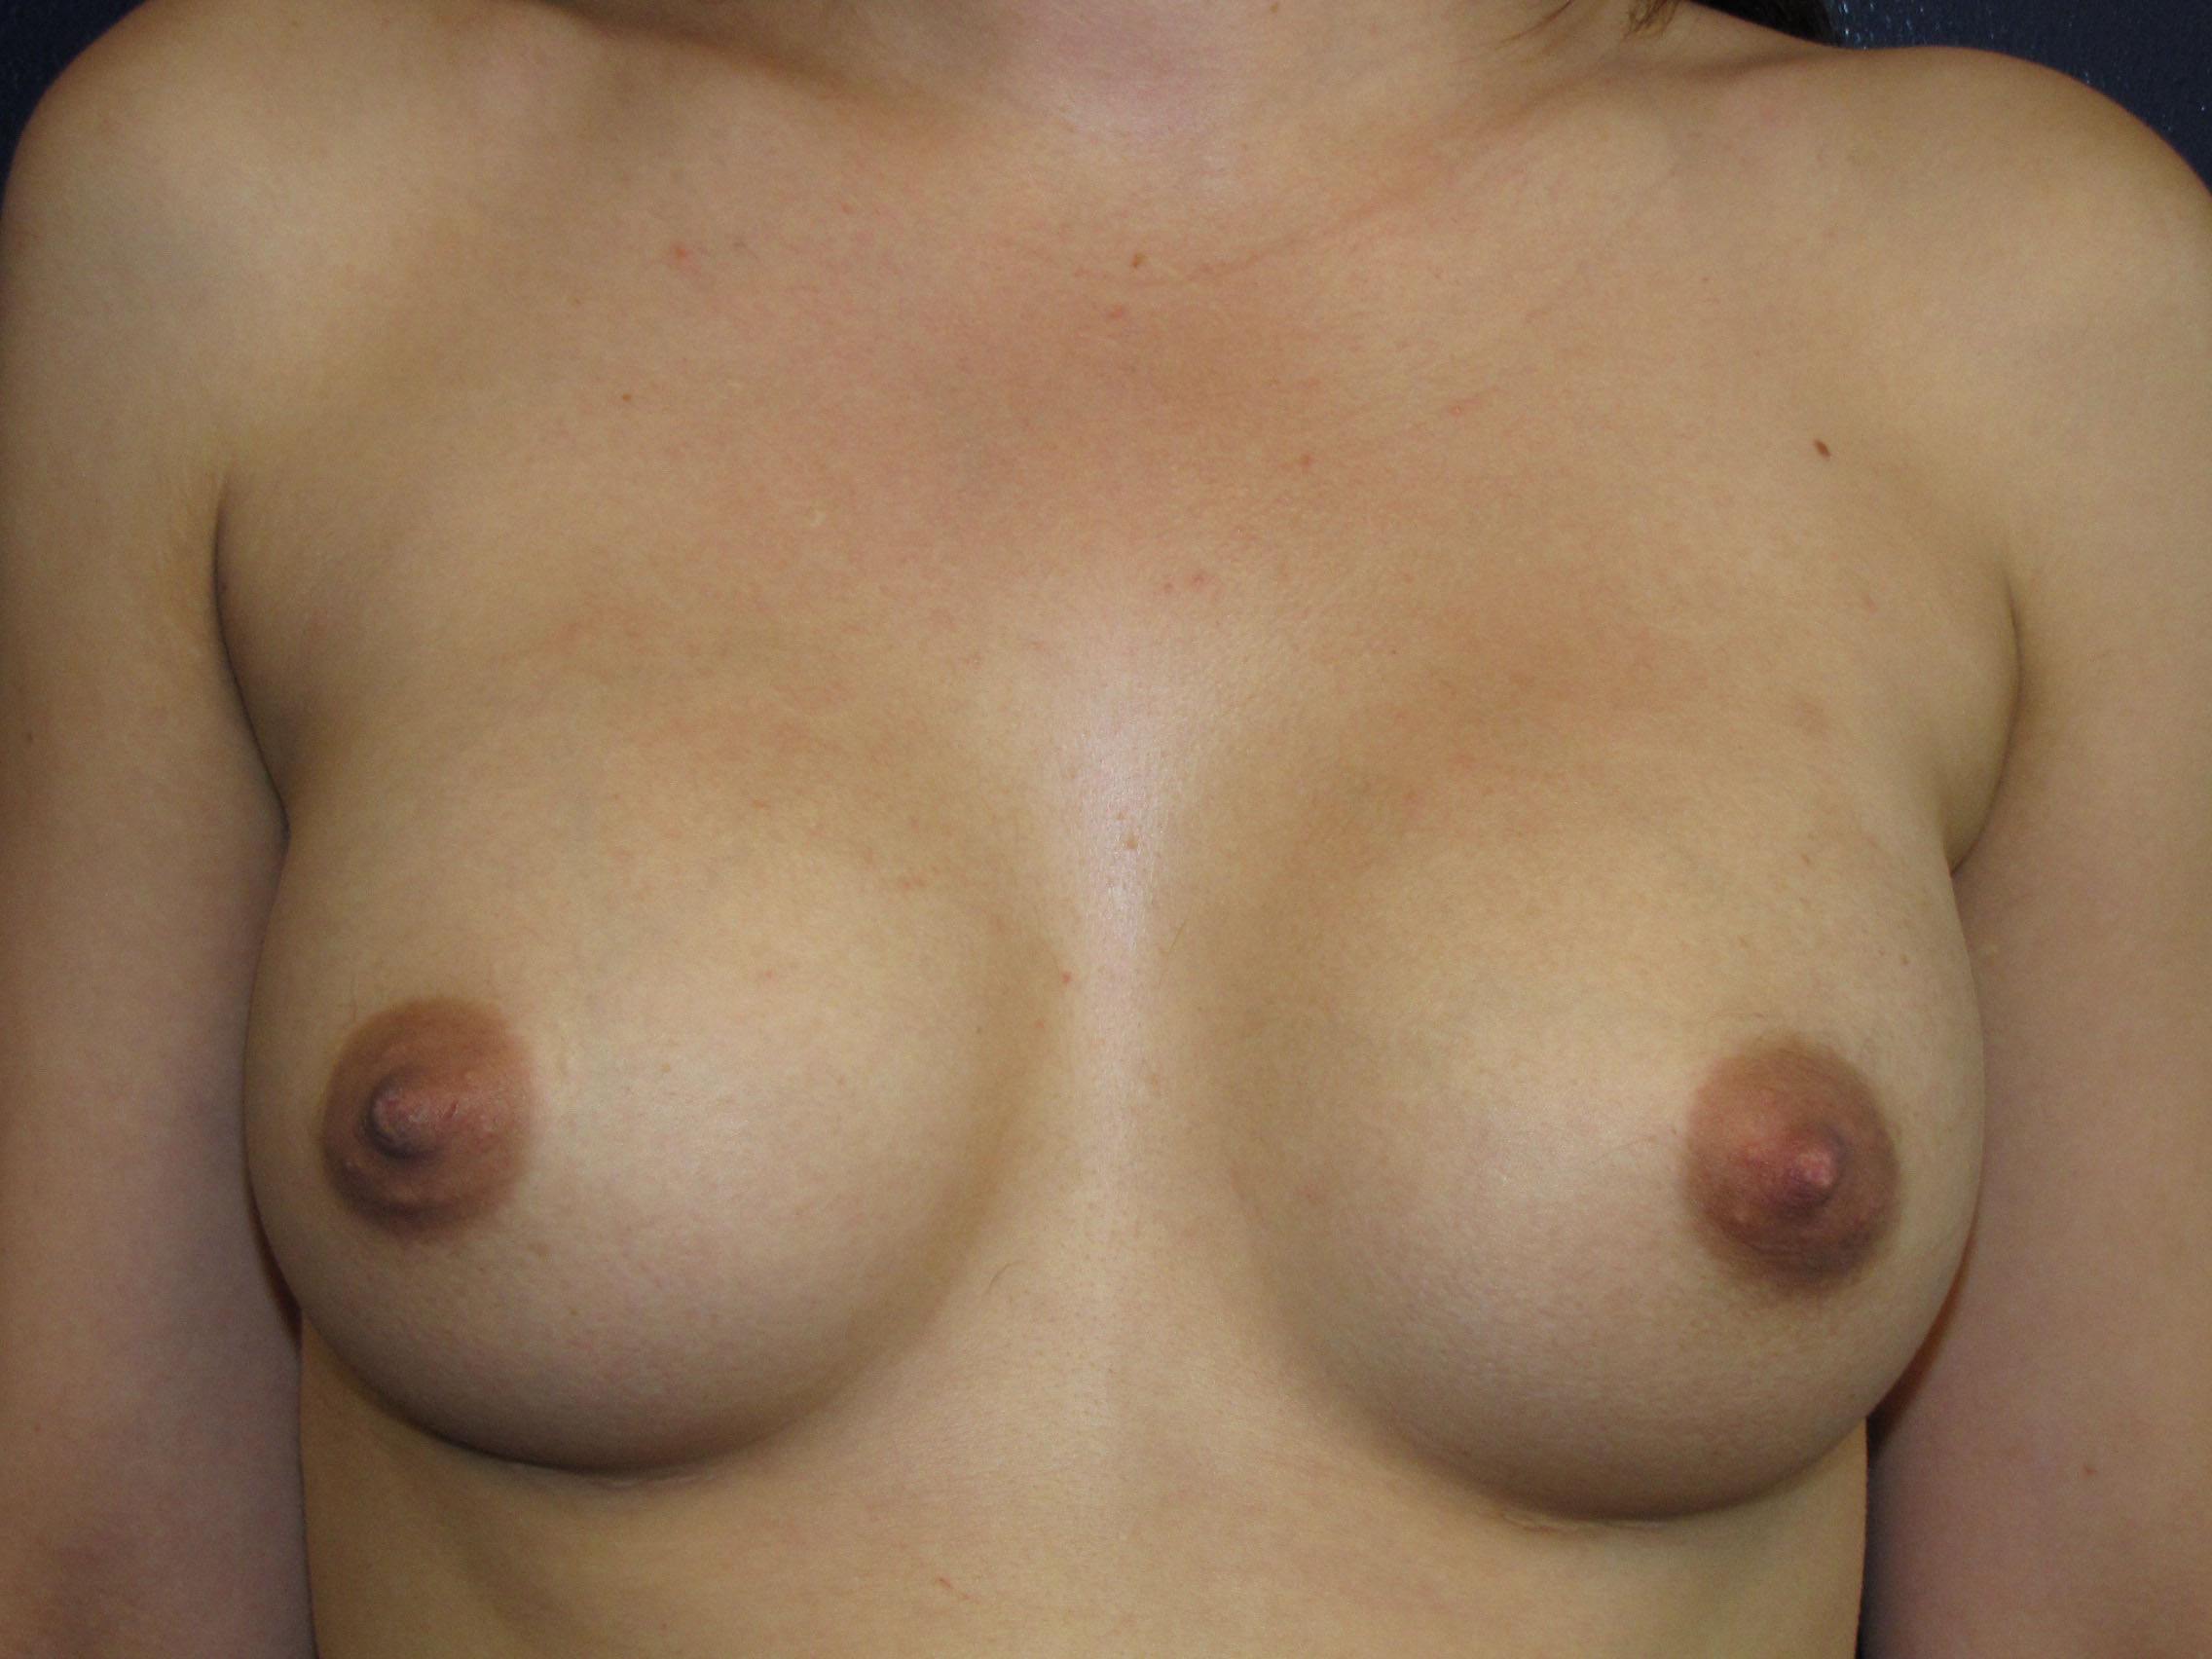 A) Breast augmentation with saline implants - prior to implant exchange